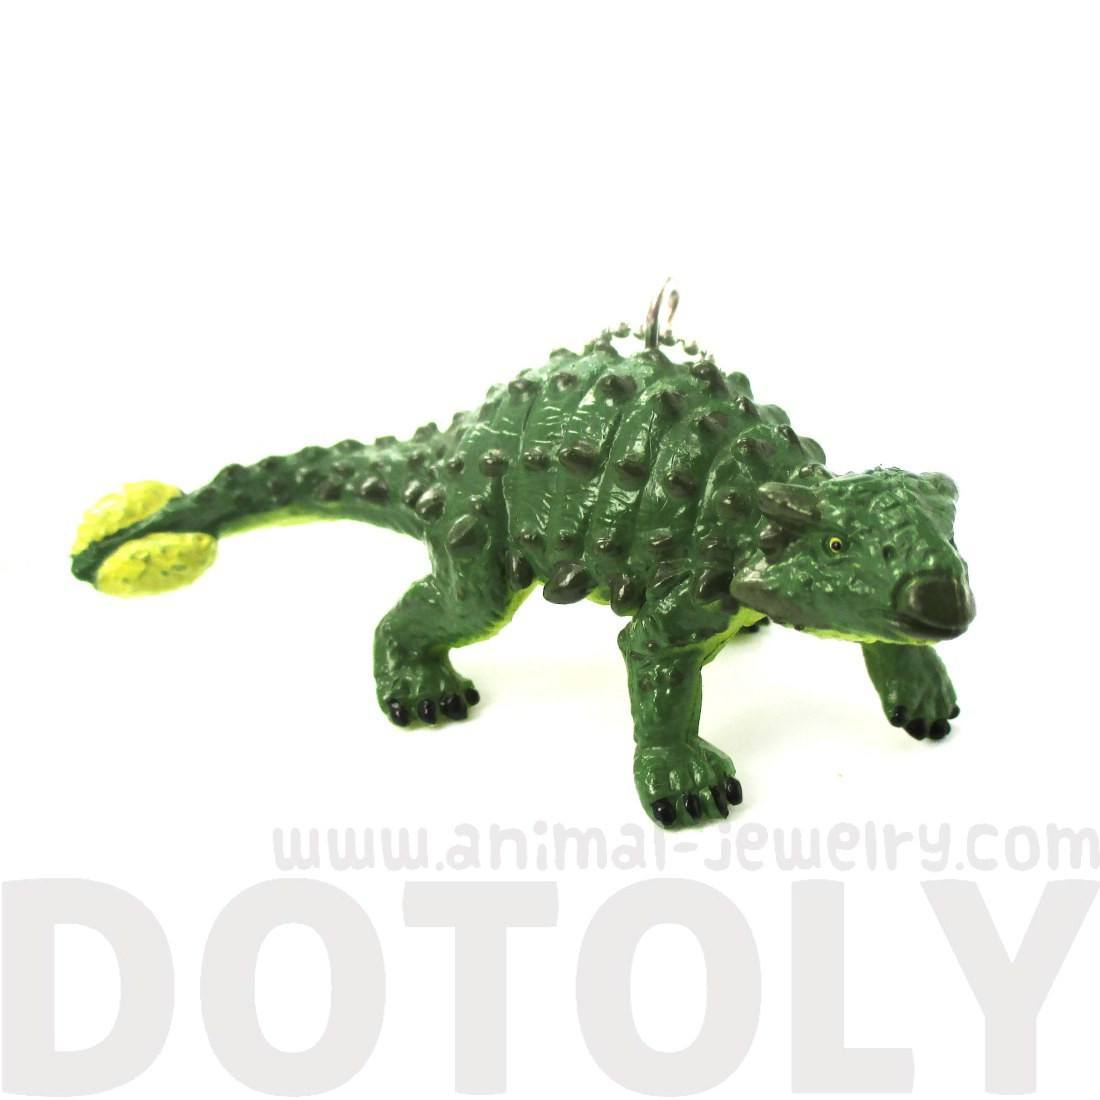 Armored Dinosaur Euoplocephalus Shaped Pendant Necklace in Green